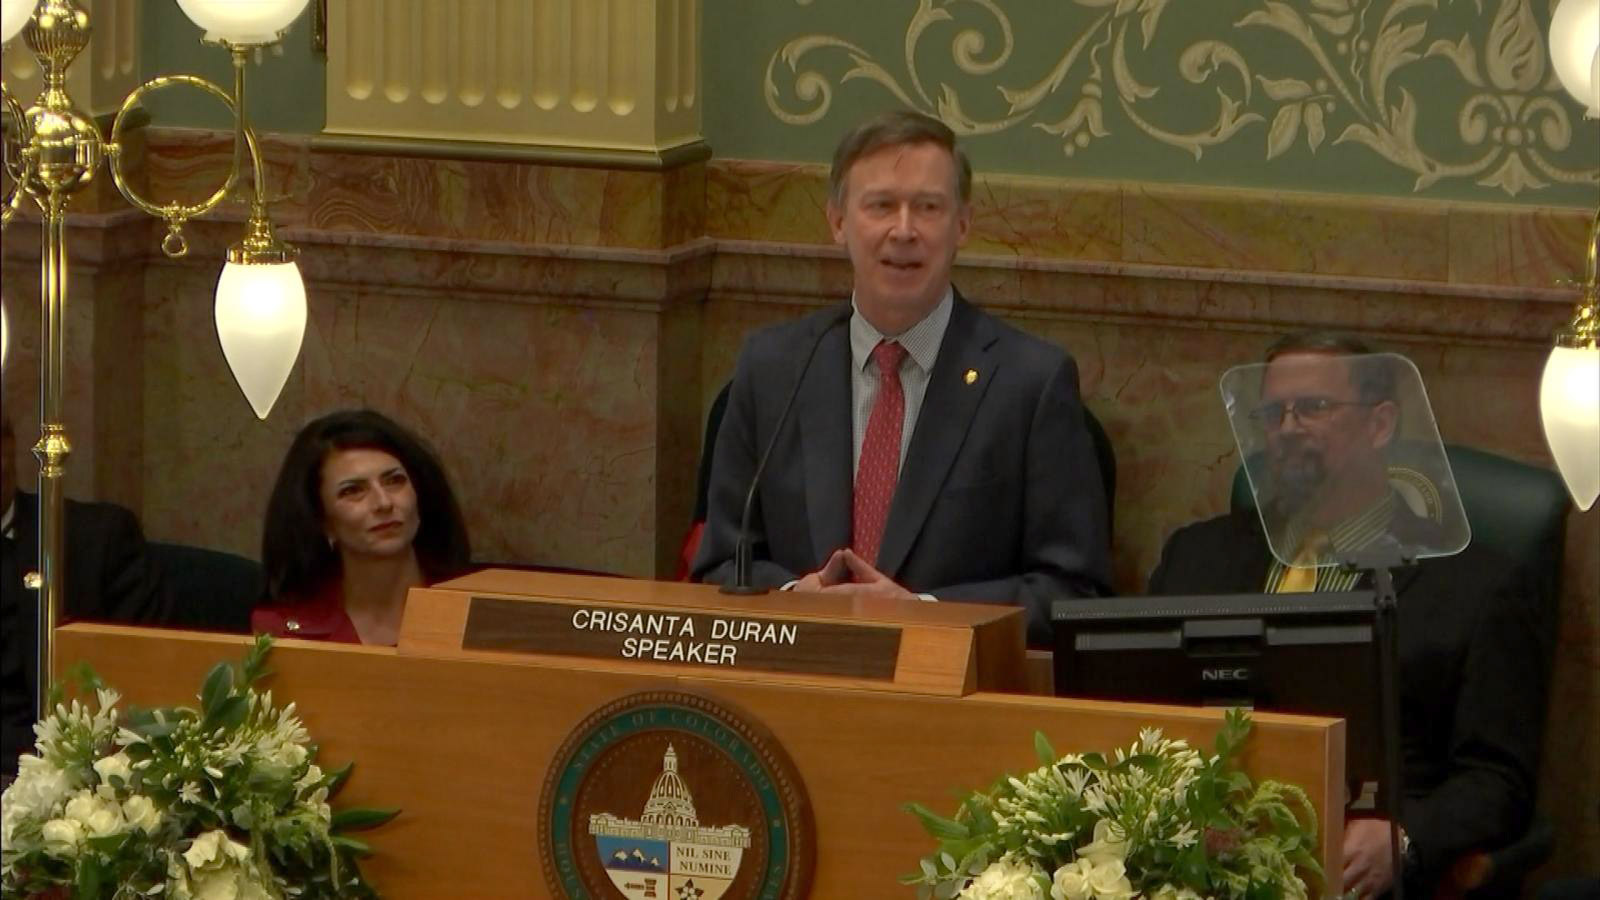 Gov. John Hickenlooper delivers the 2017 State of the State address. (credit: CBS)